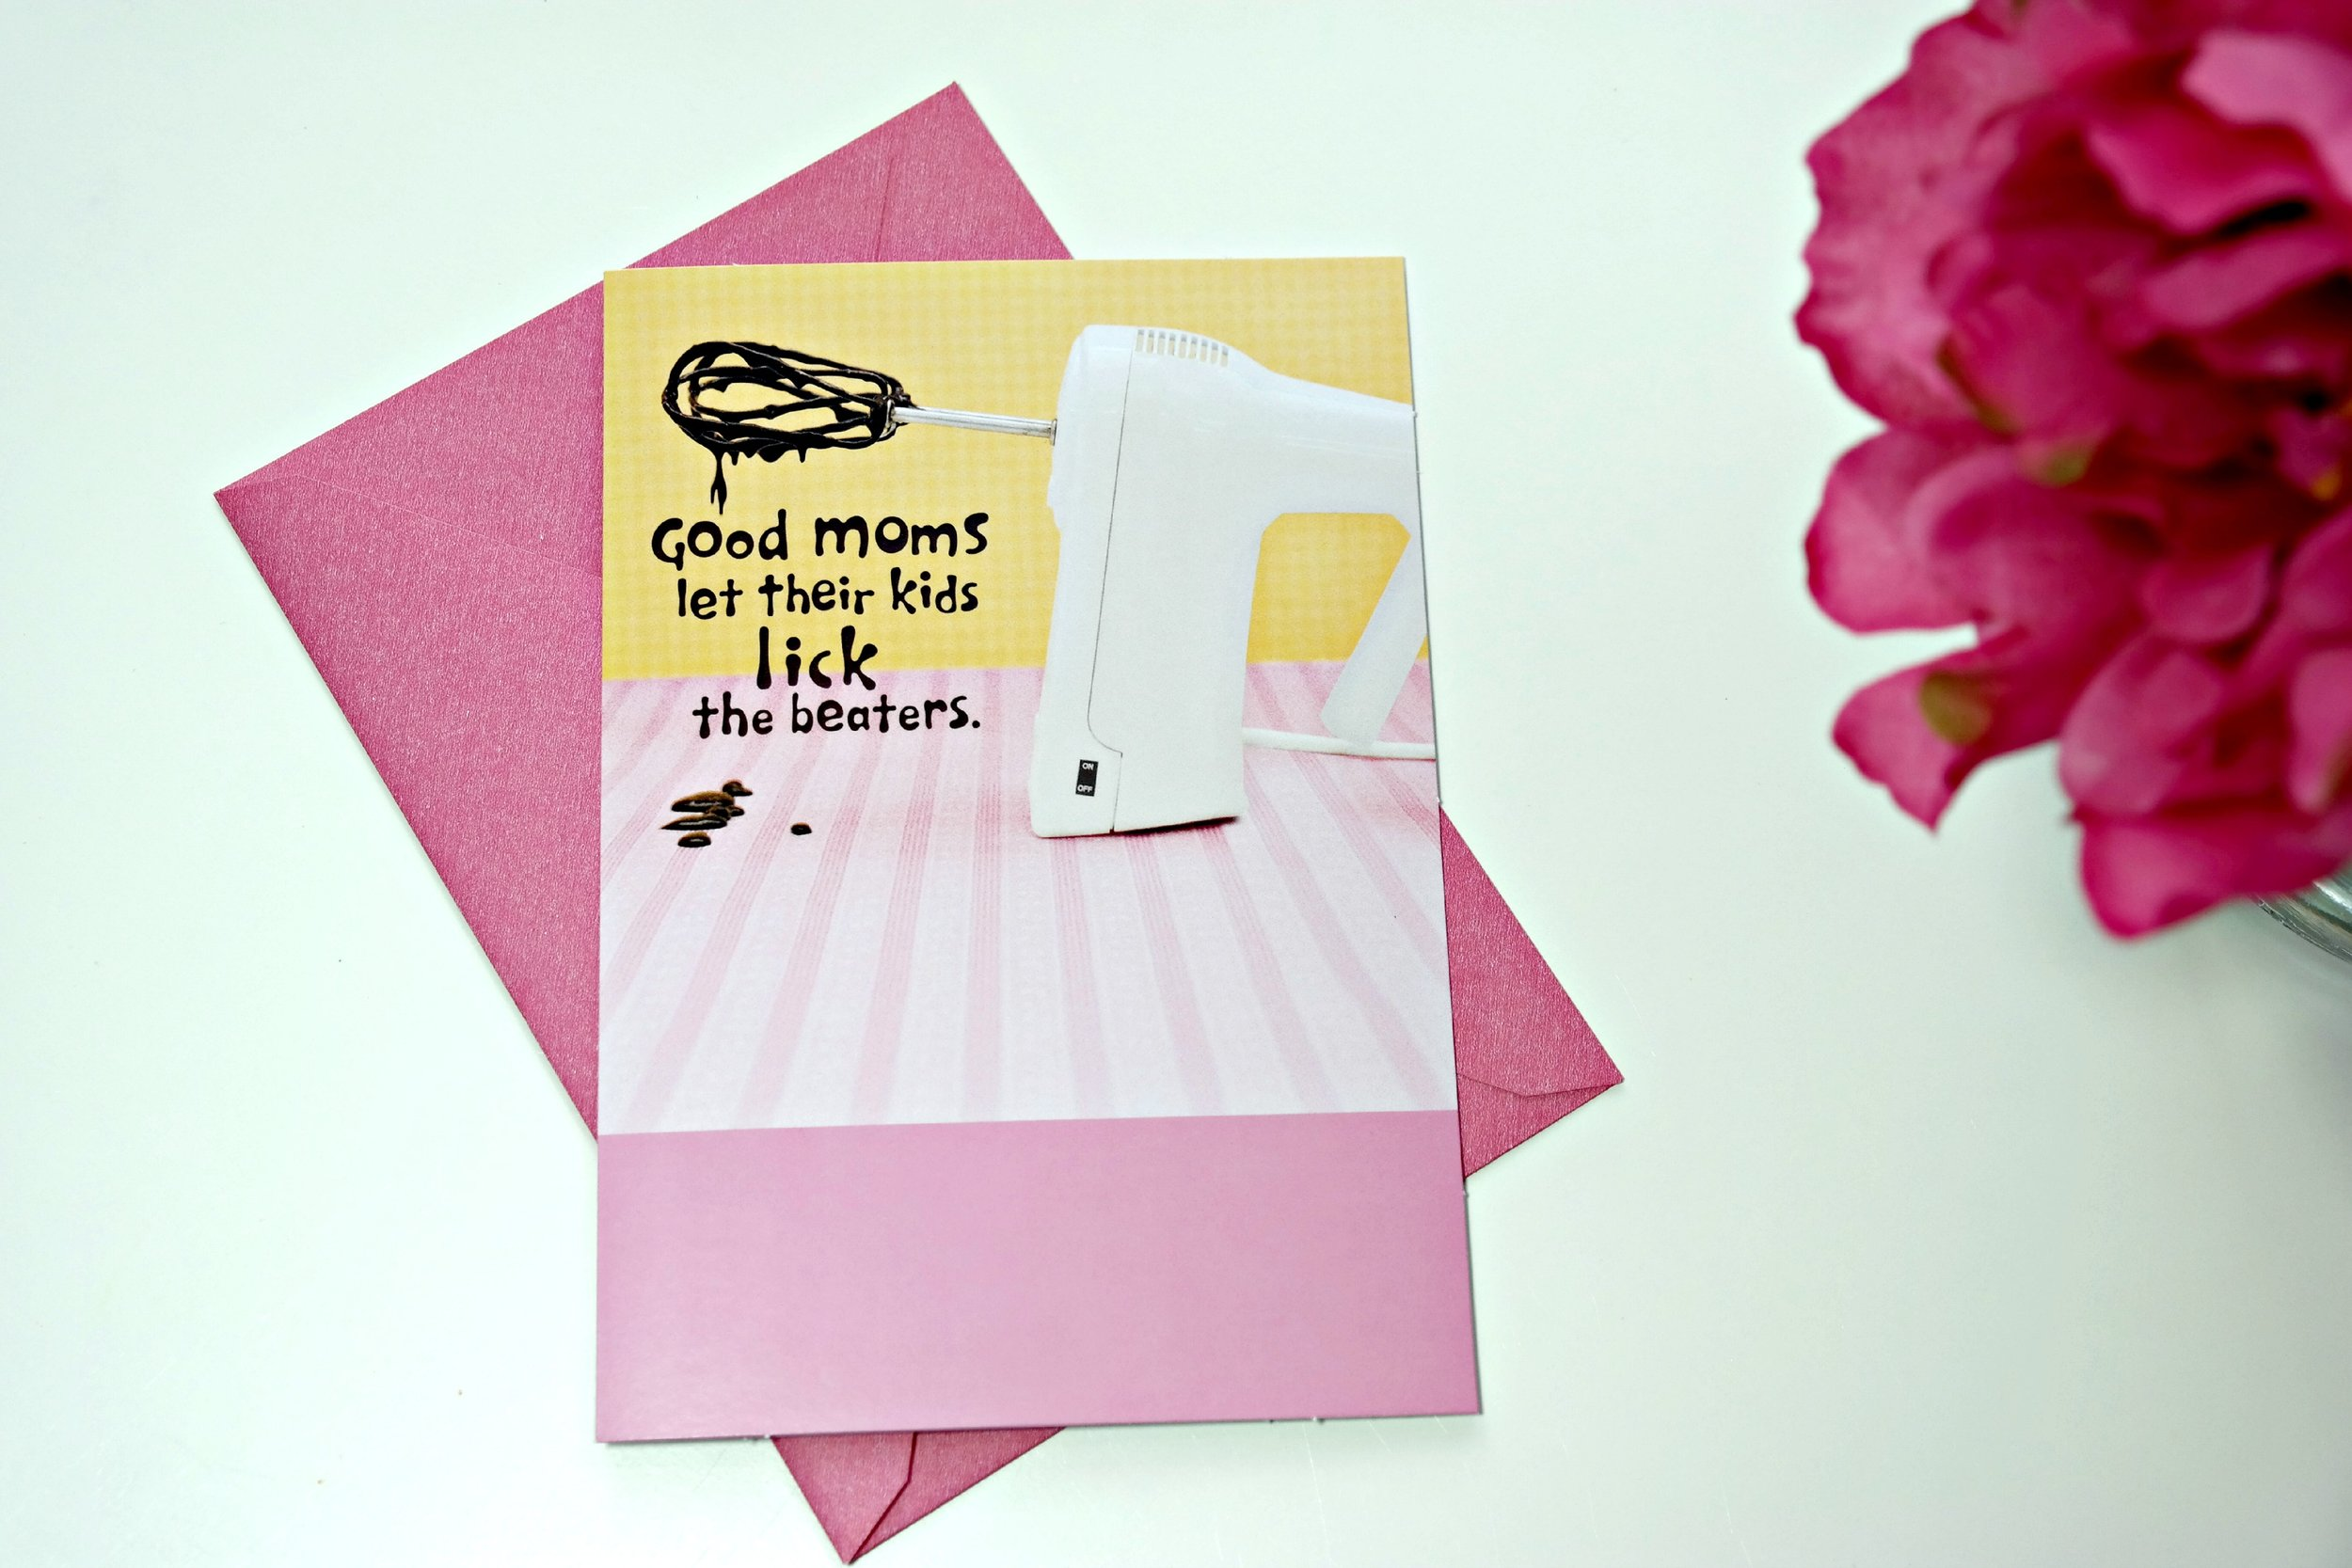 Good moms and batter! Hallmark helps us put your heart to paper with awesomeness like this!